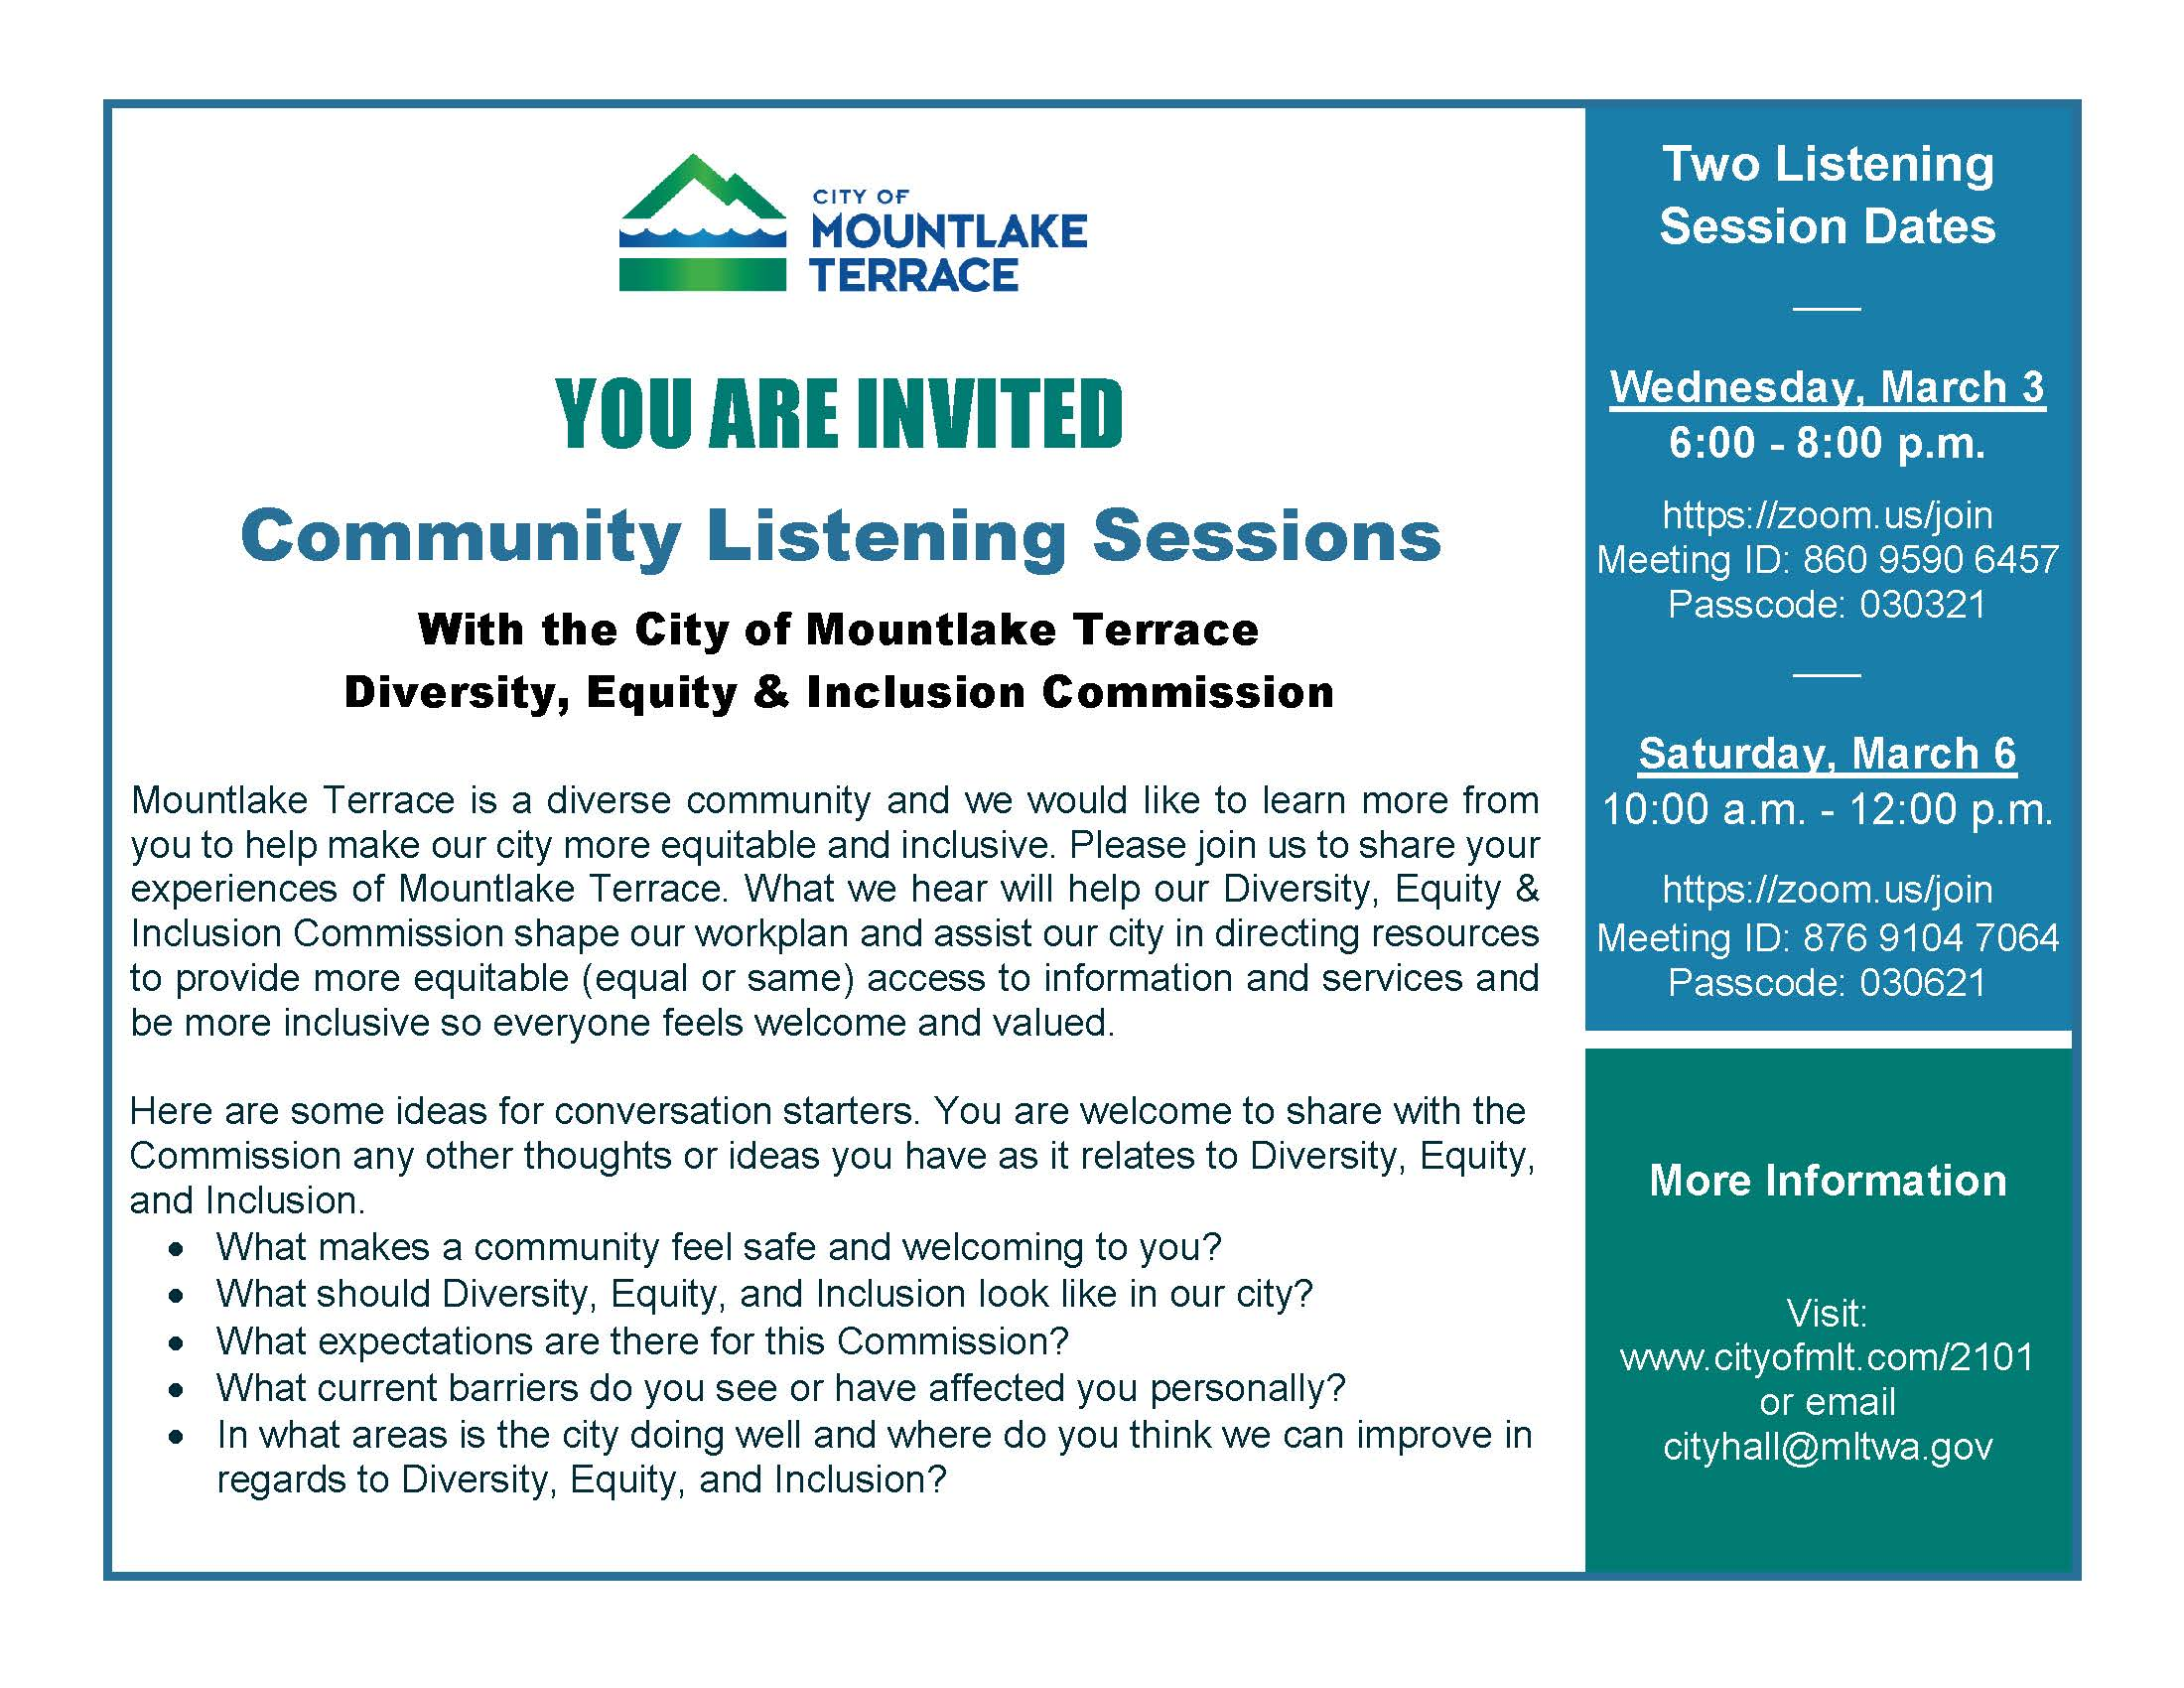 Postcard announcing listening sessions about diversity, equity and inclusion